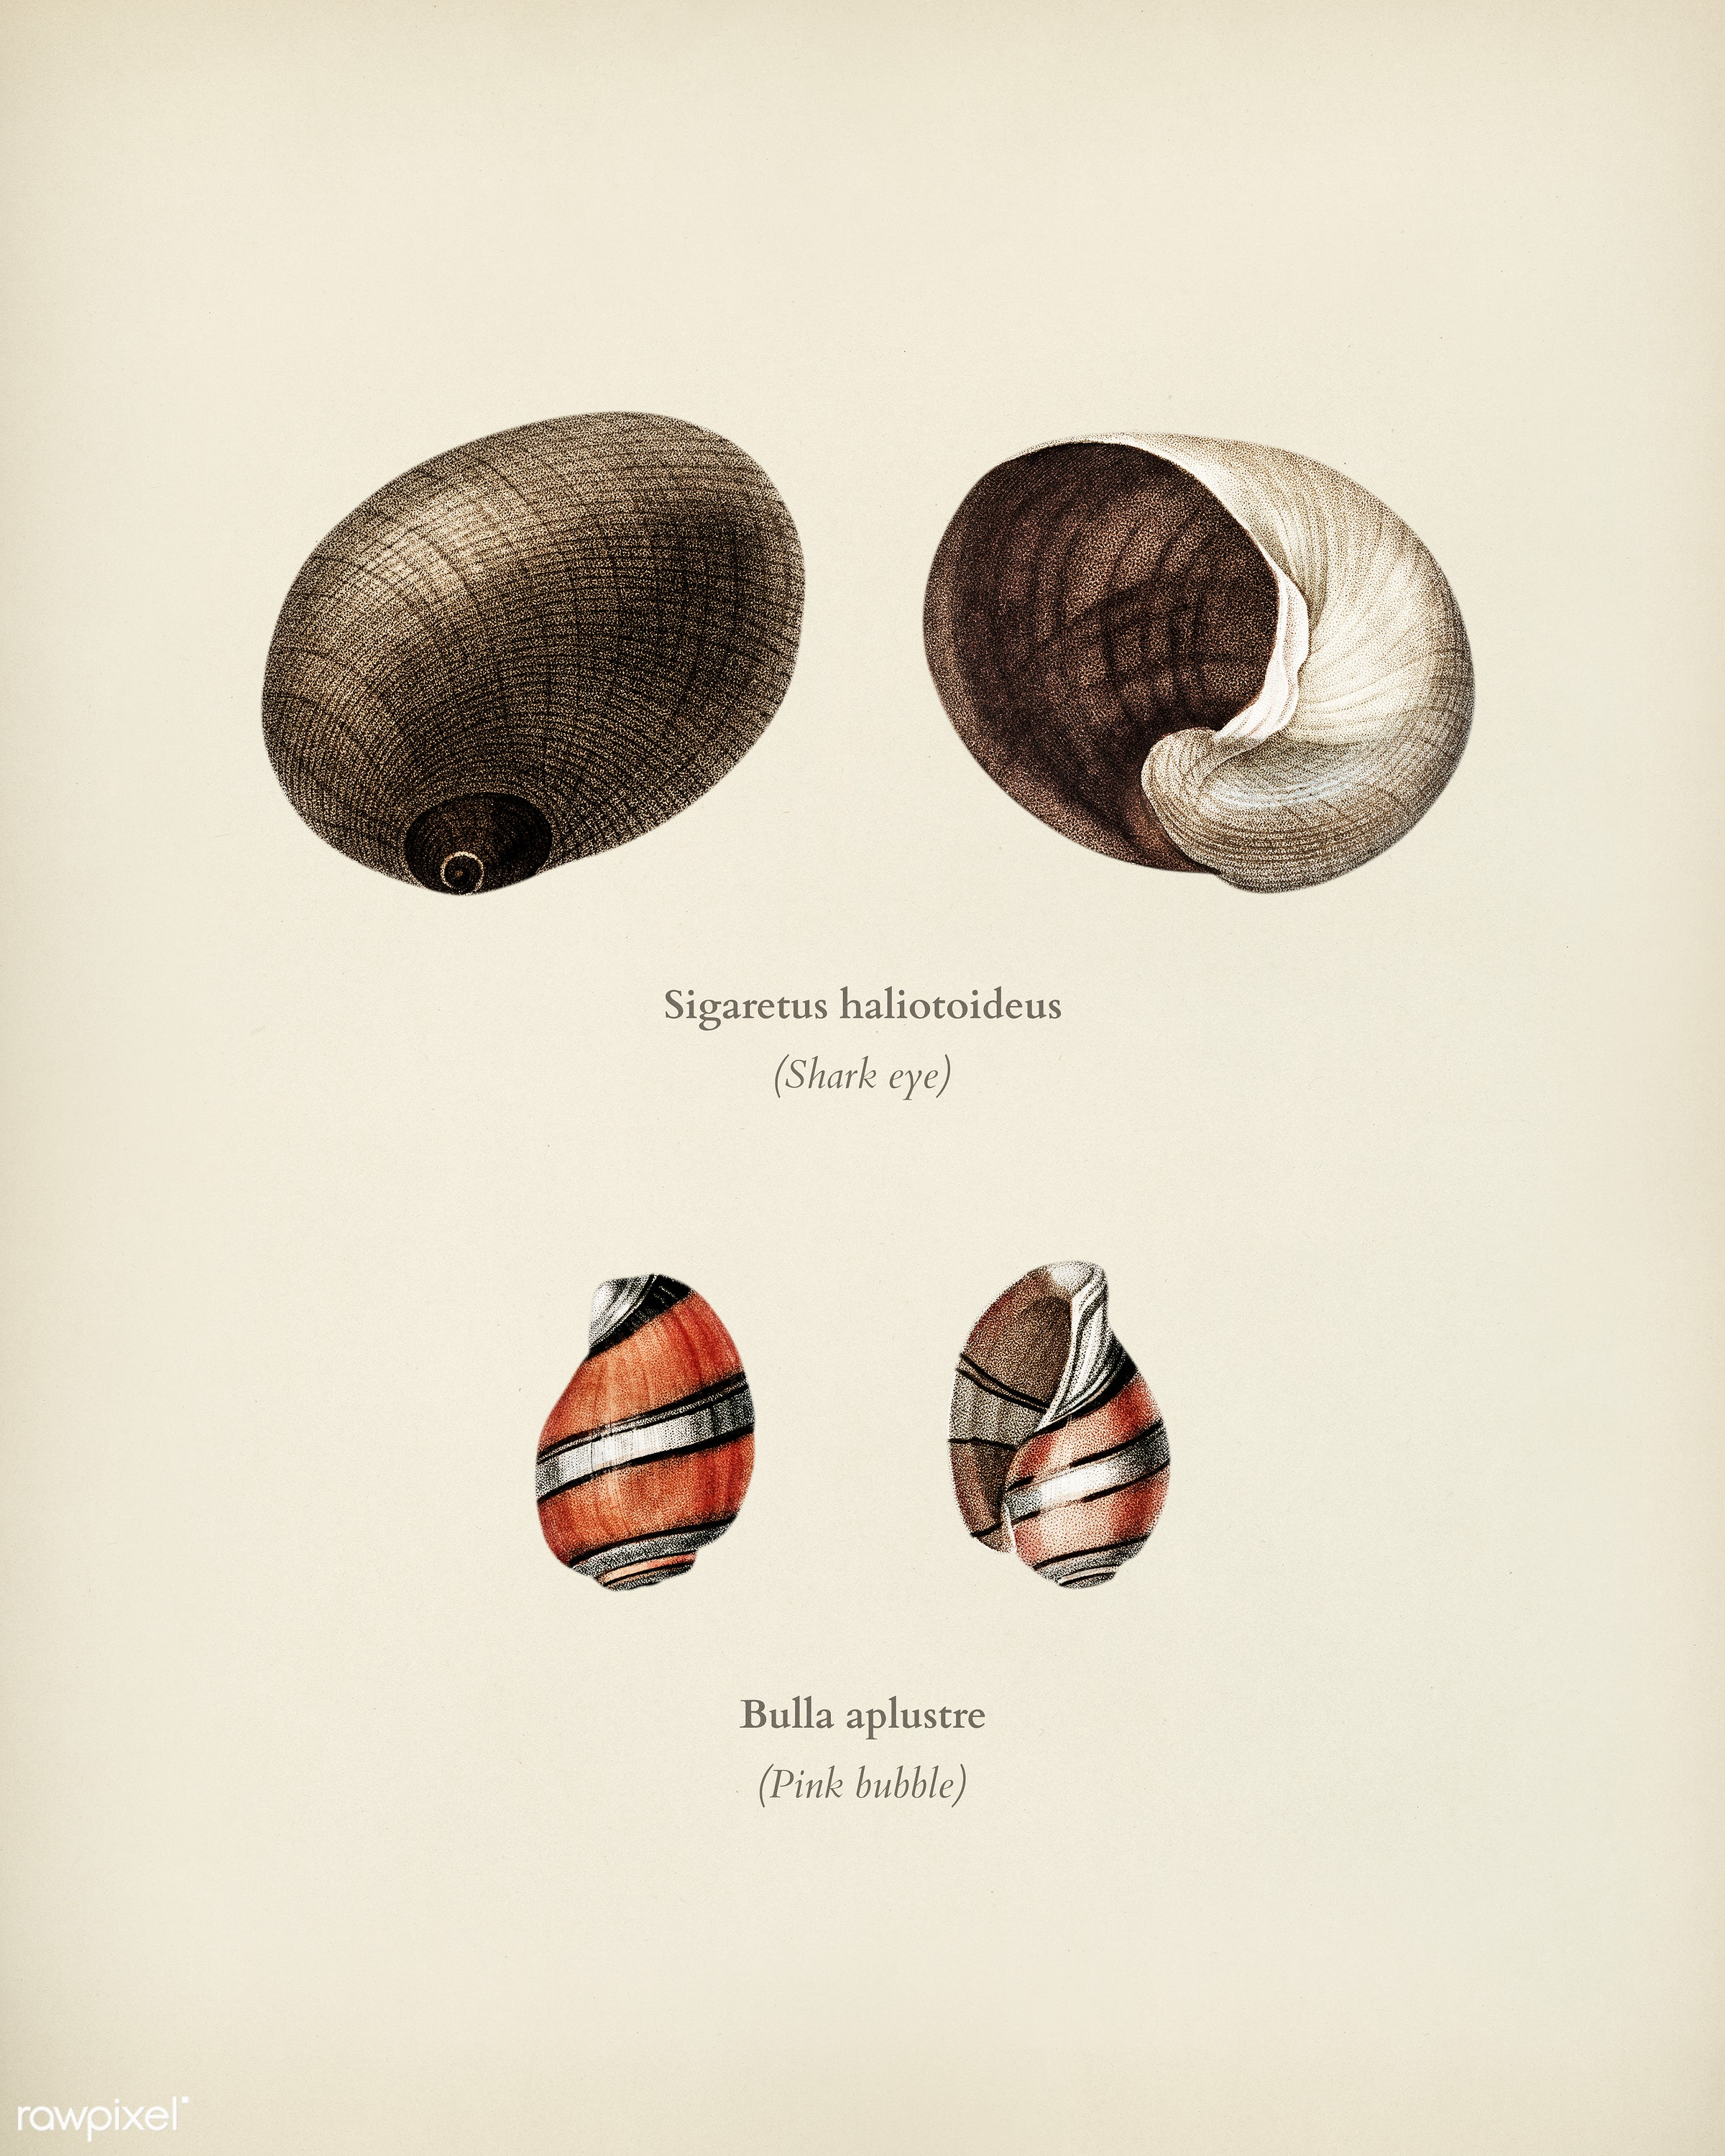 Shark eye (Sigaretus haliotoideus) and Pink bubble (Bulla aplustre) illustrated by Charles Dessalines D' Orbigny (1806-...